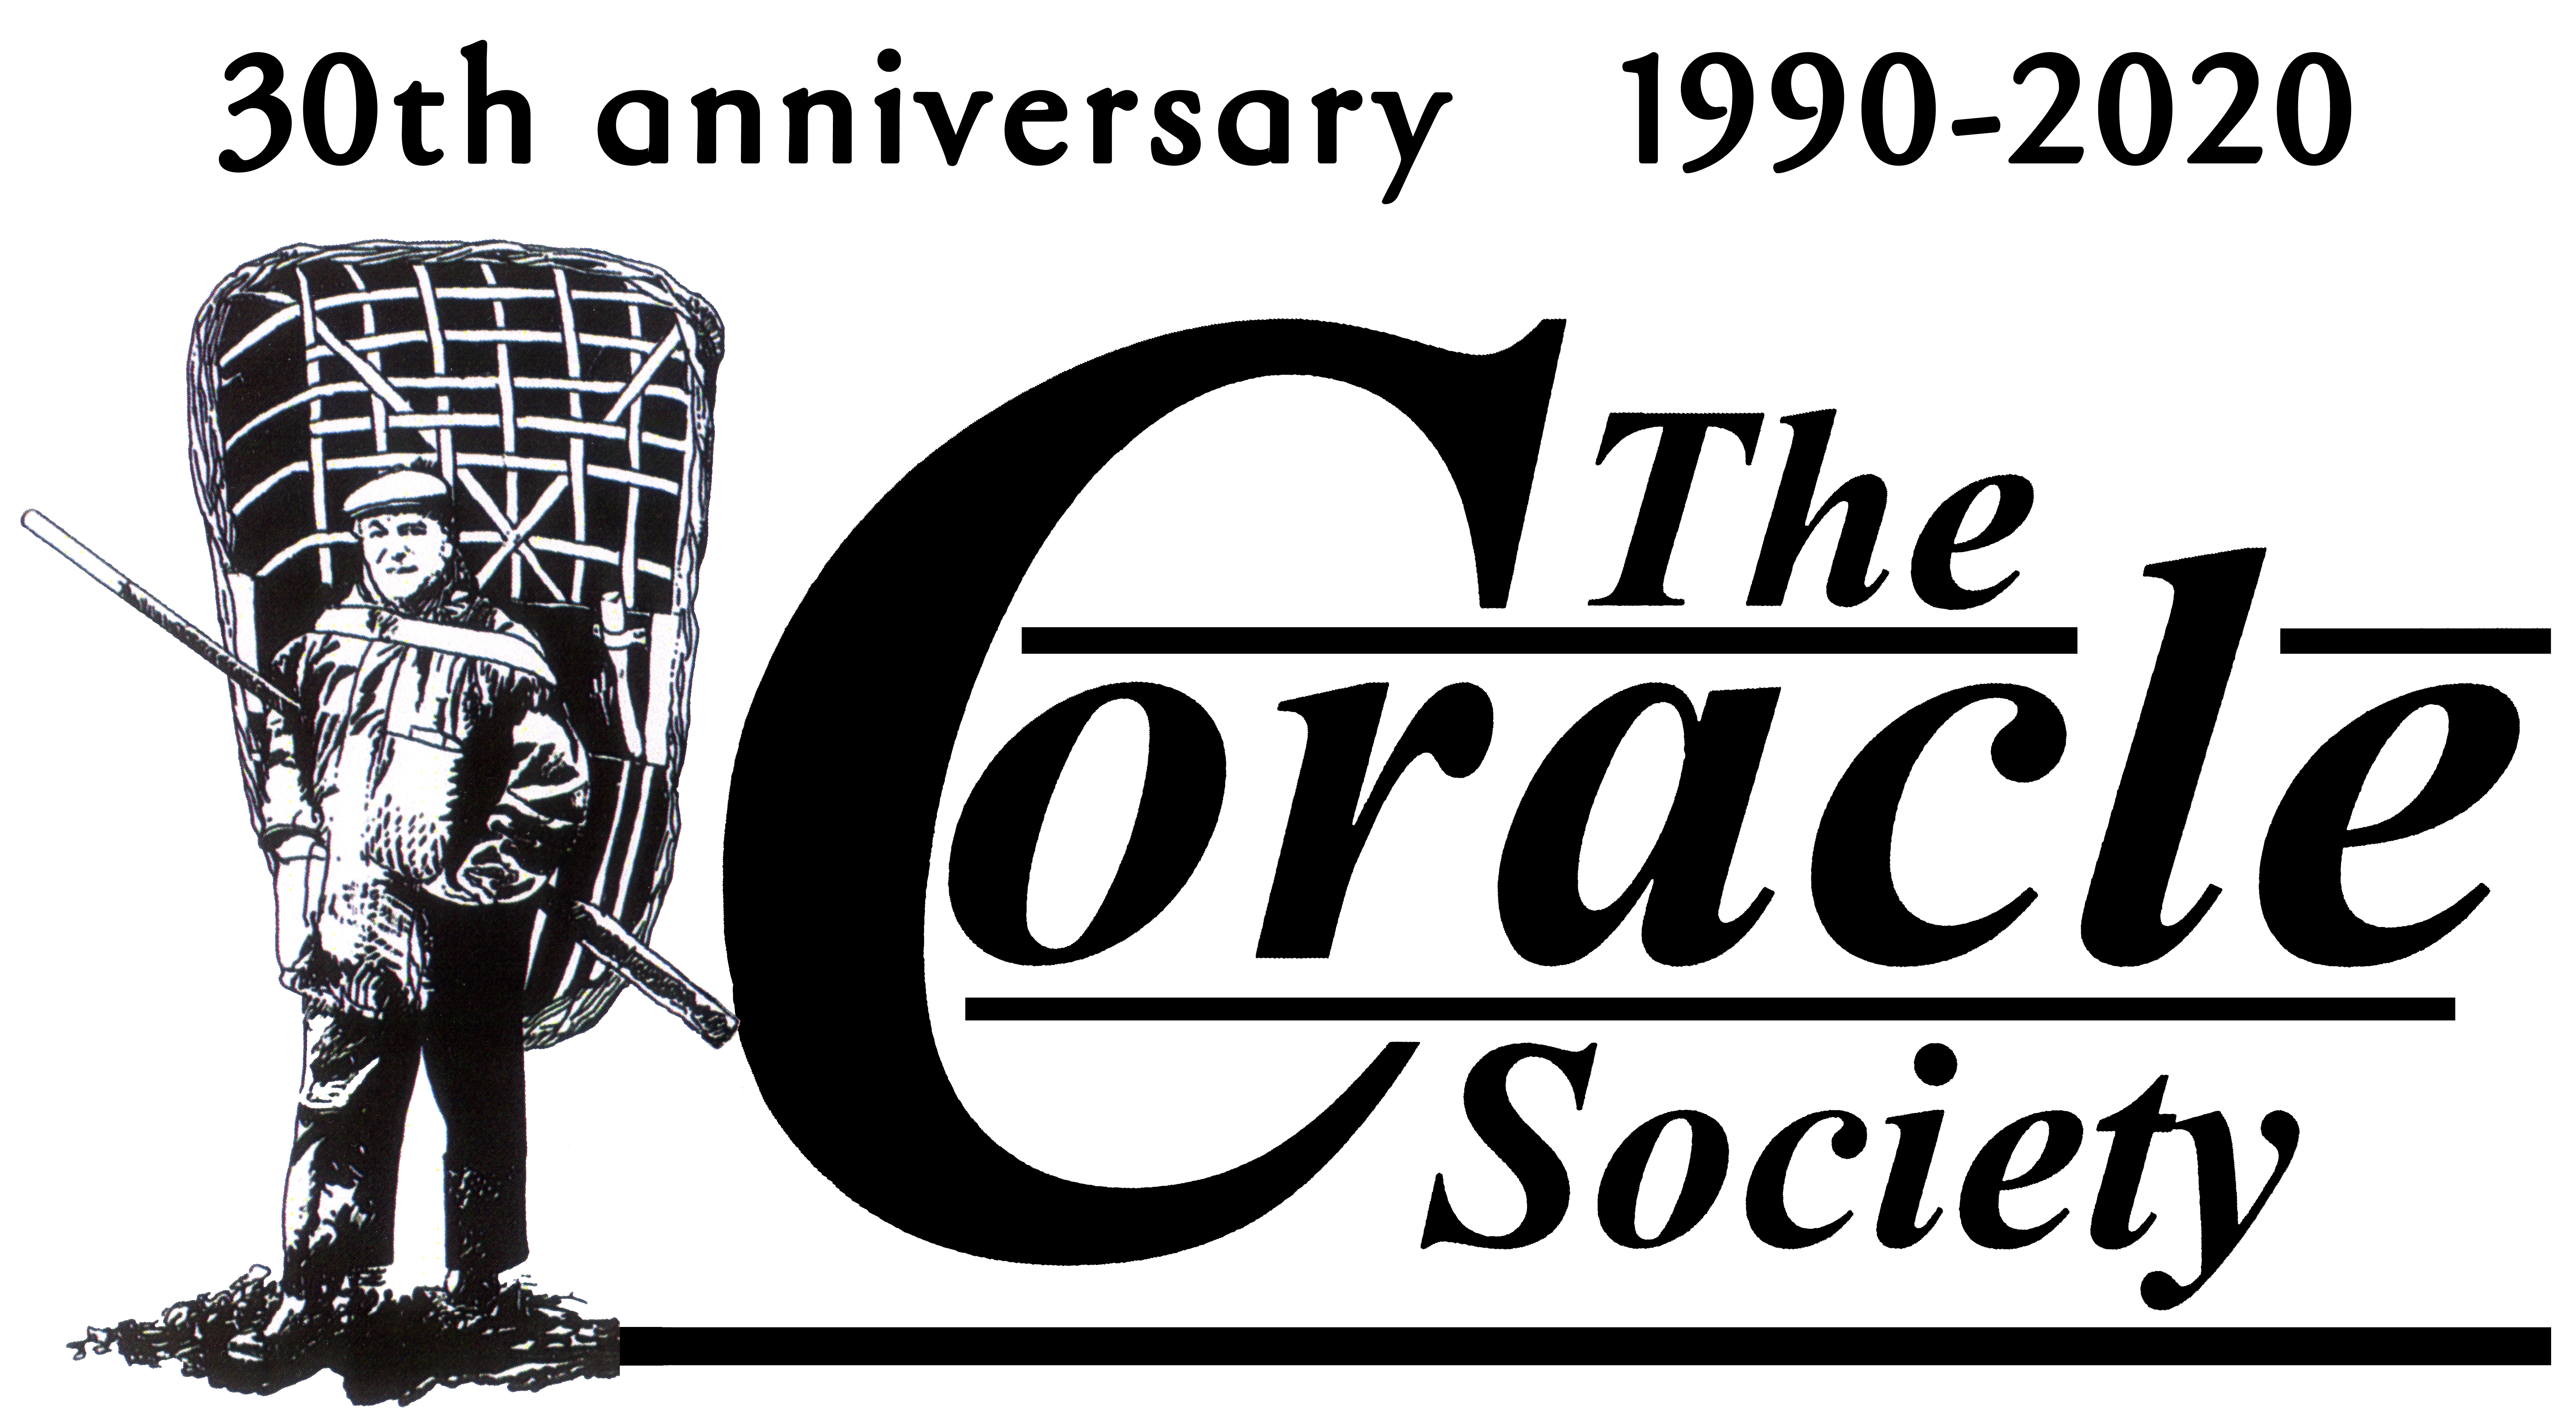 Coracle Society Logo